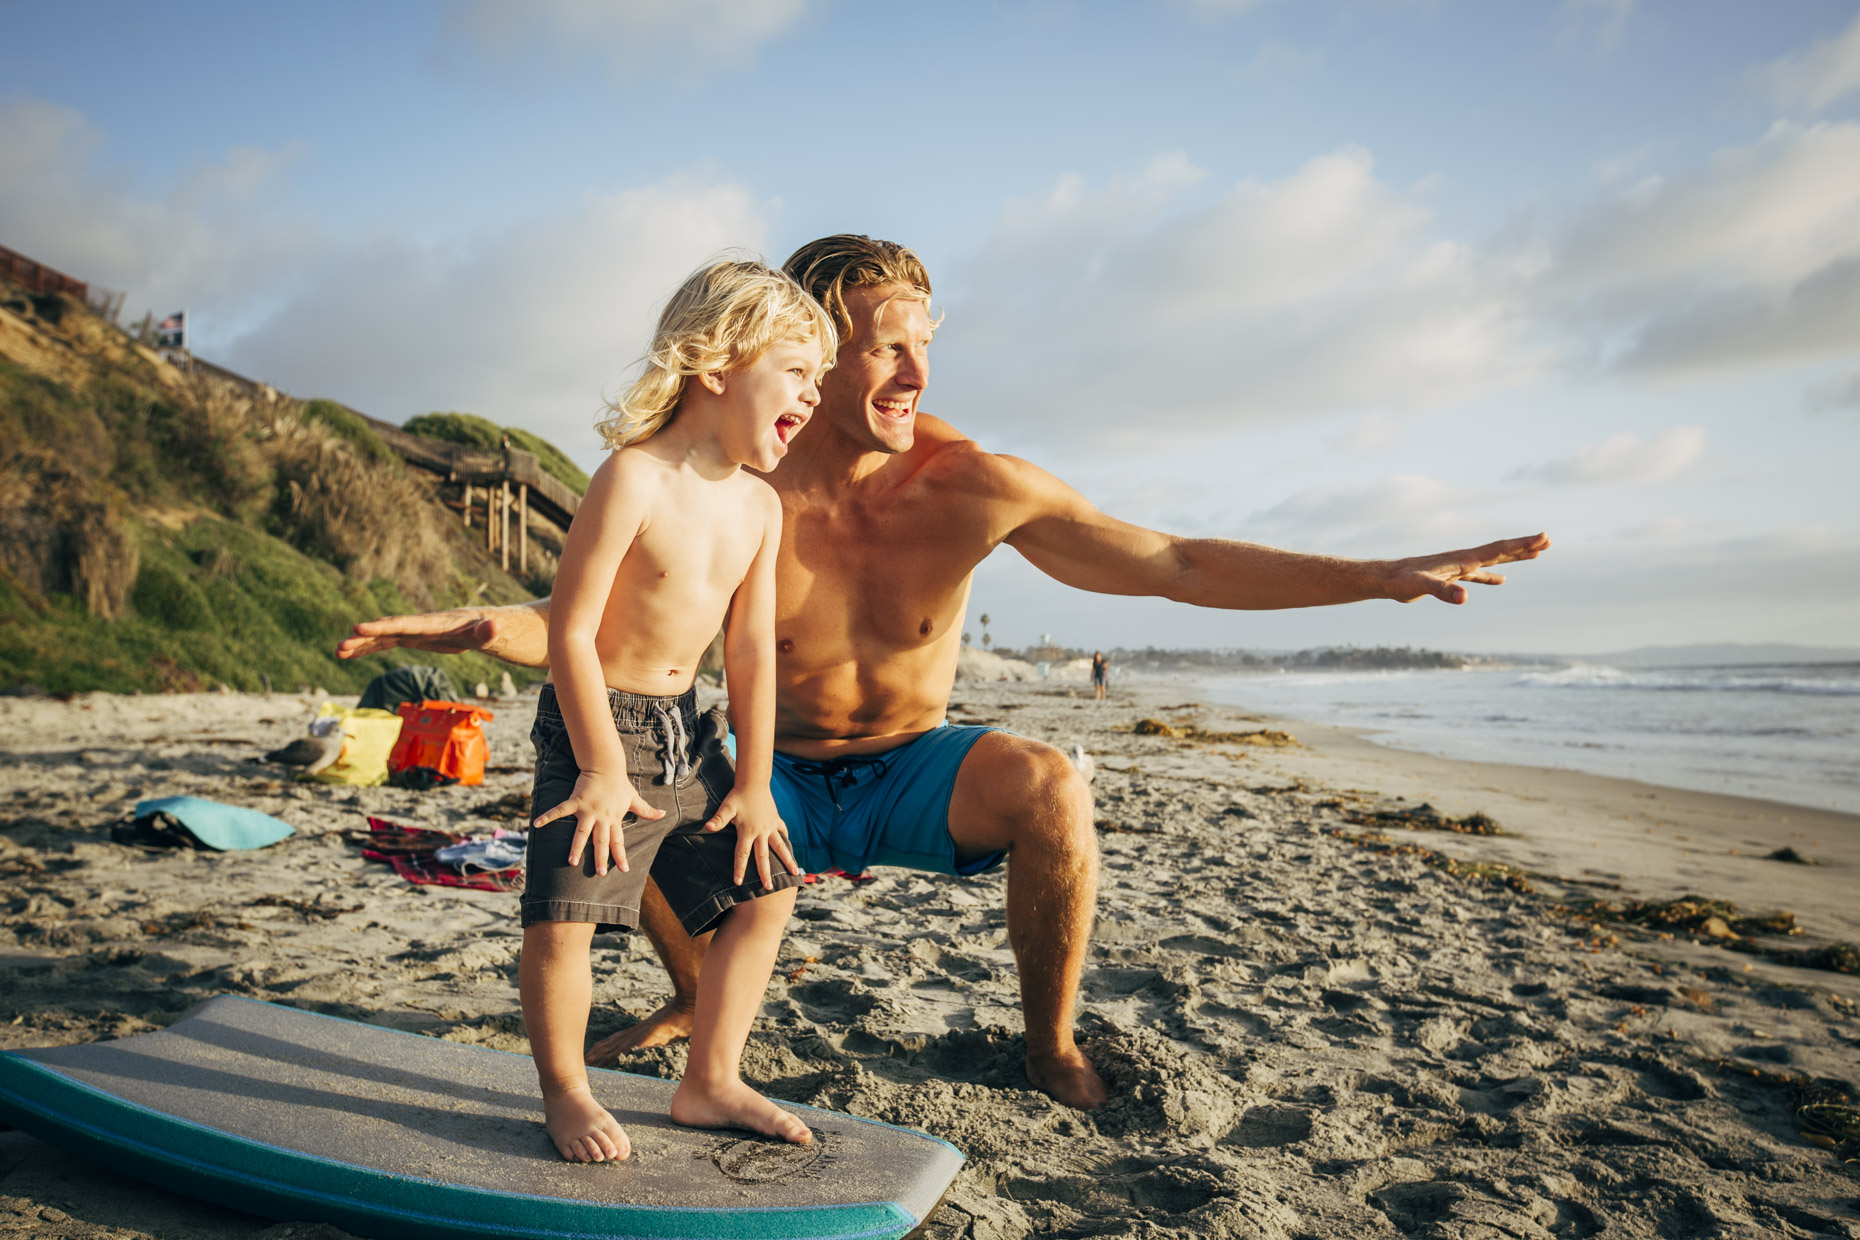 Dad teaching son how to surf on beach